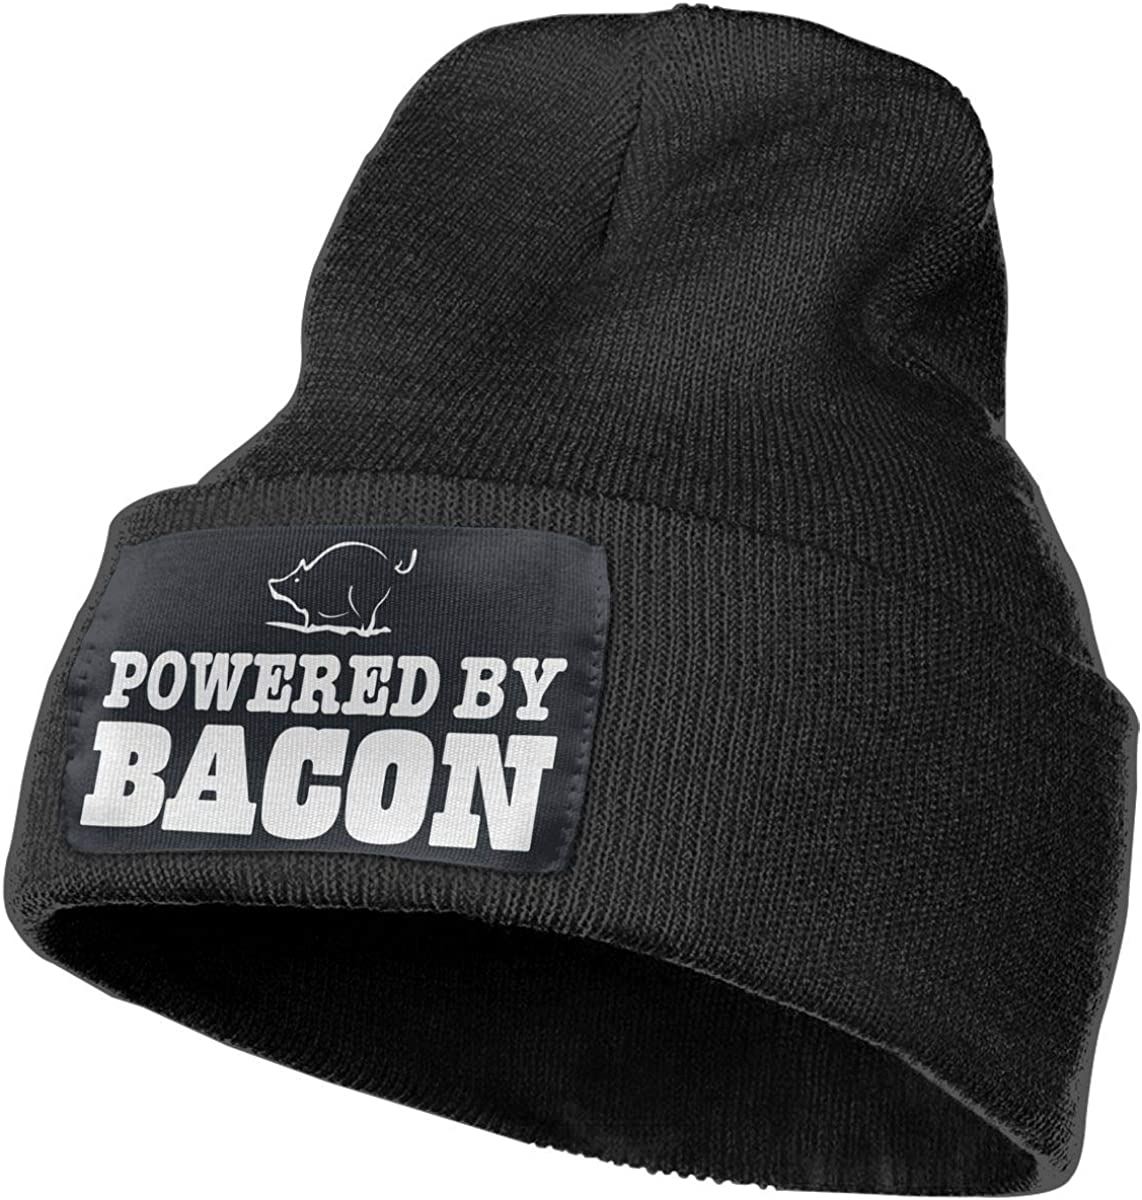 TAOMAP89 Powered by Bacon Women and Men Skull Caps Winter Warm Stretchy Knitting Beanie Hats